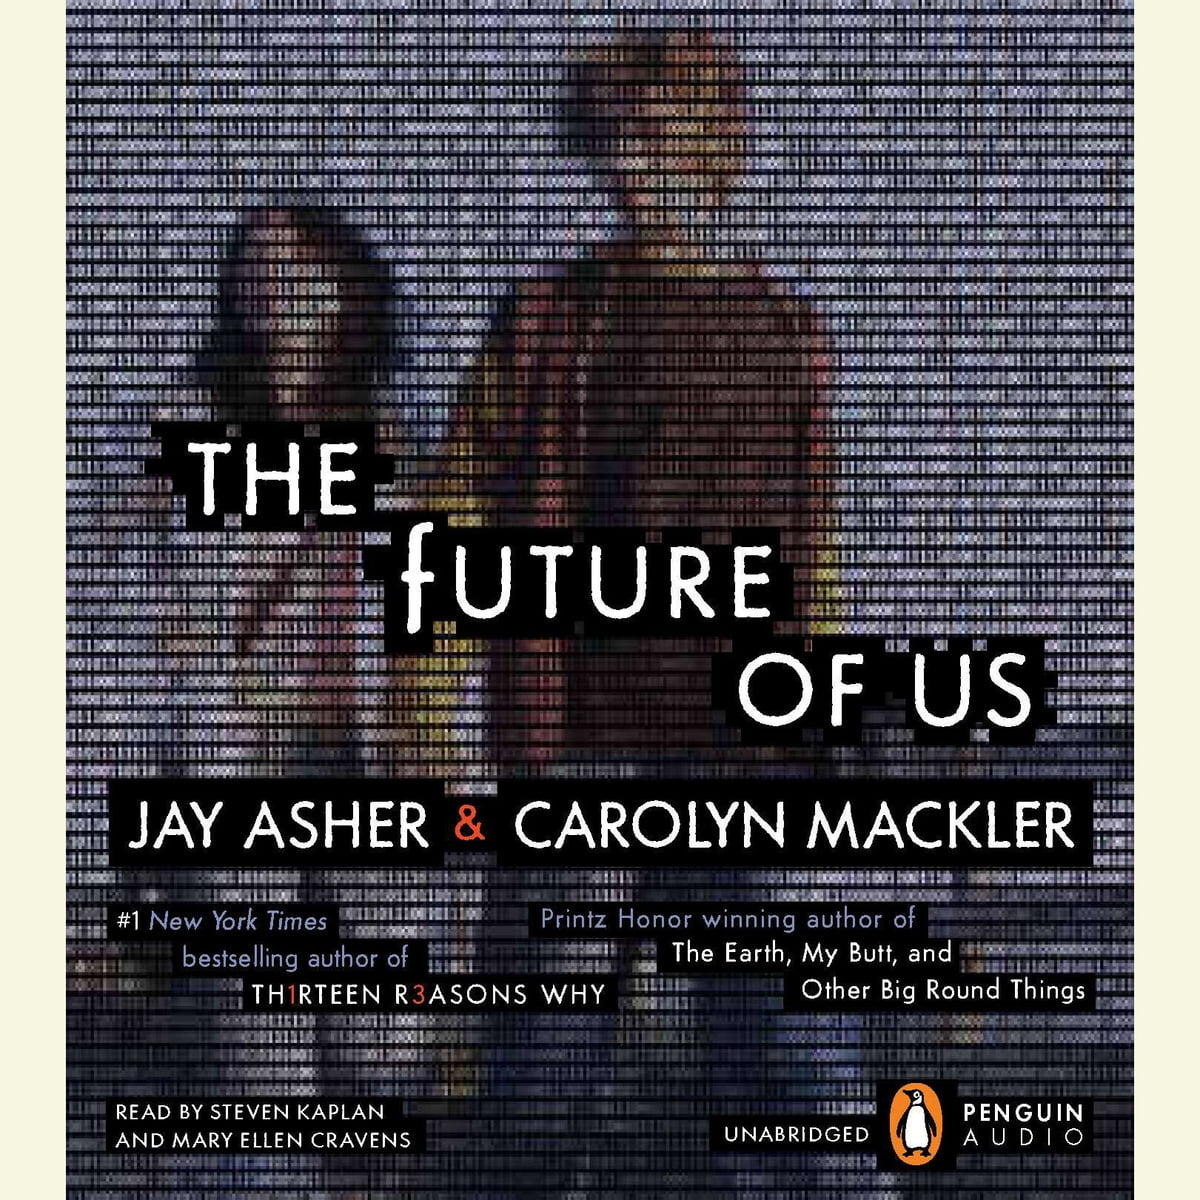 US And The Future